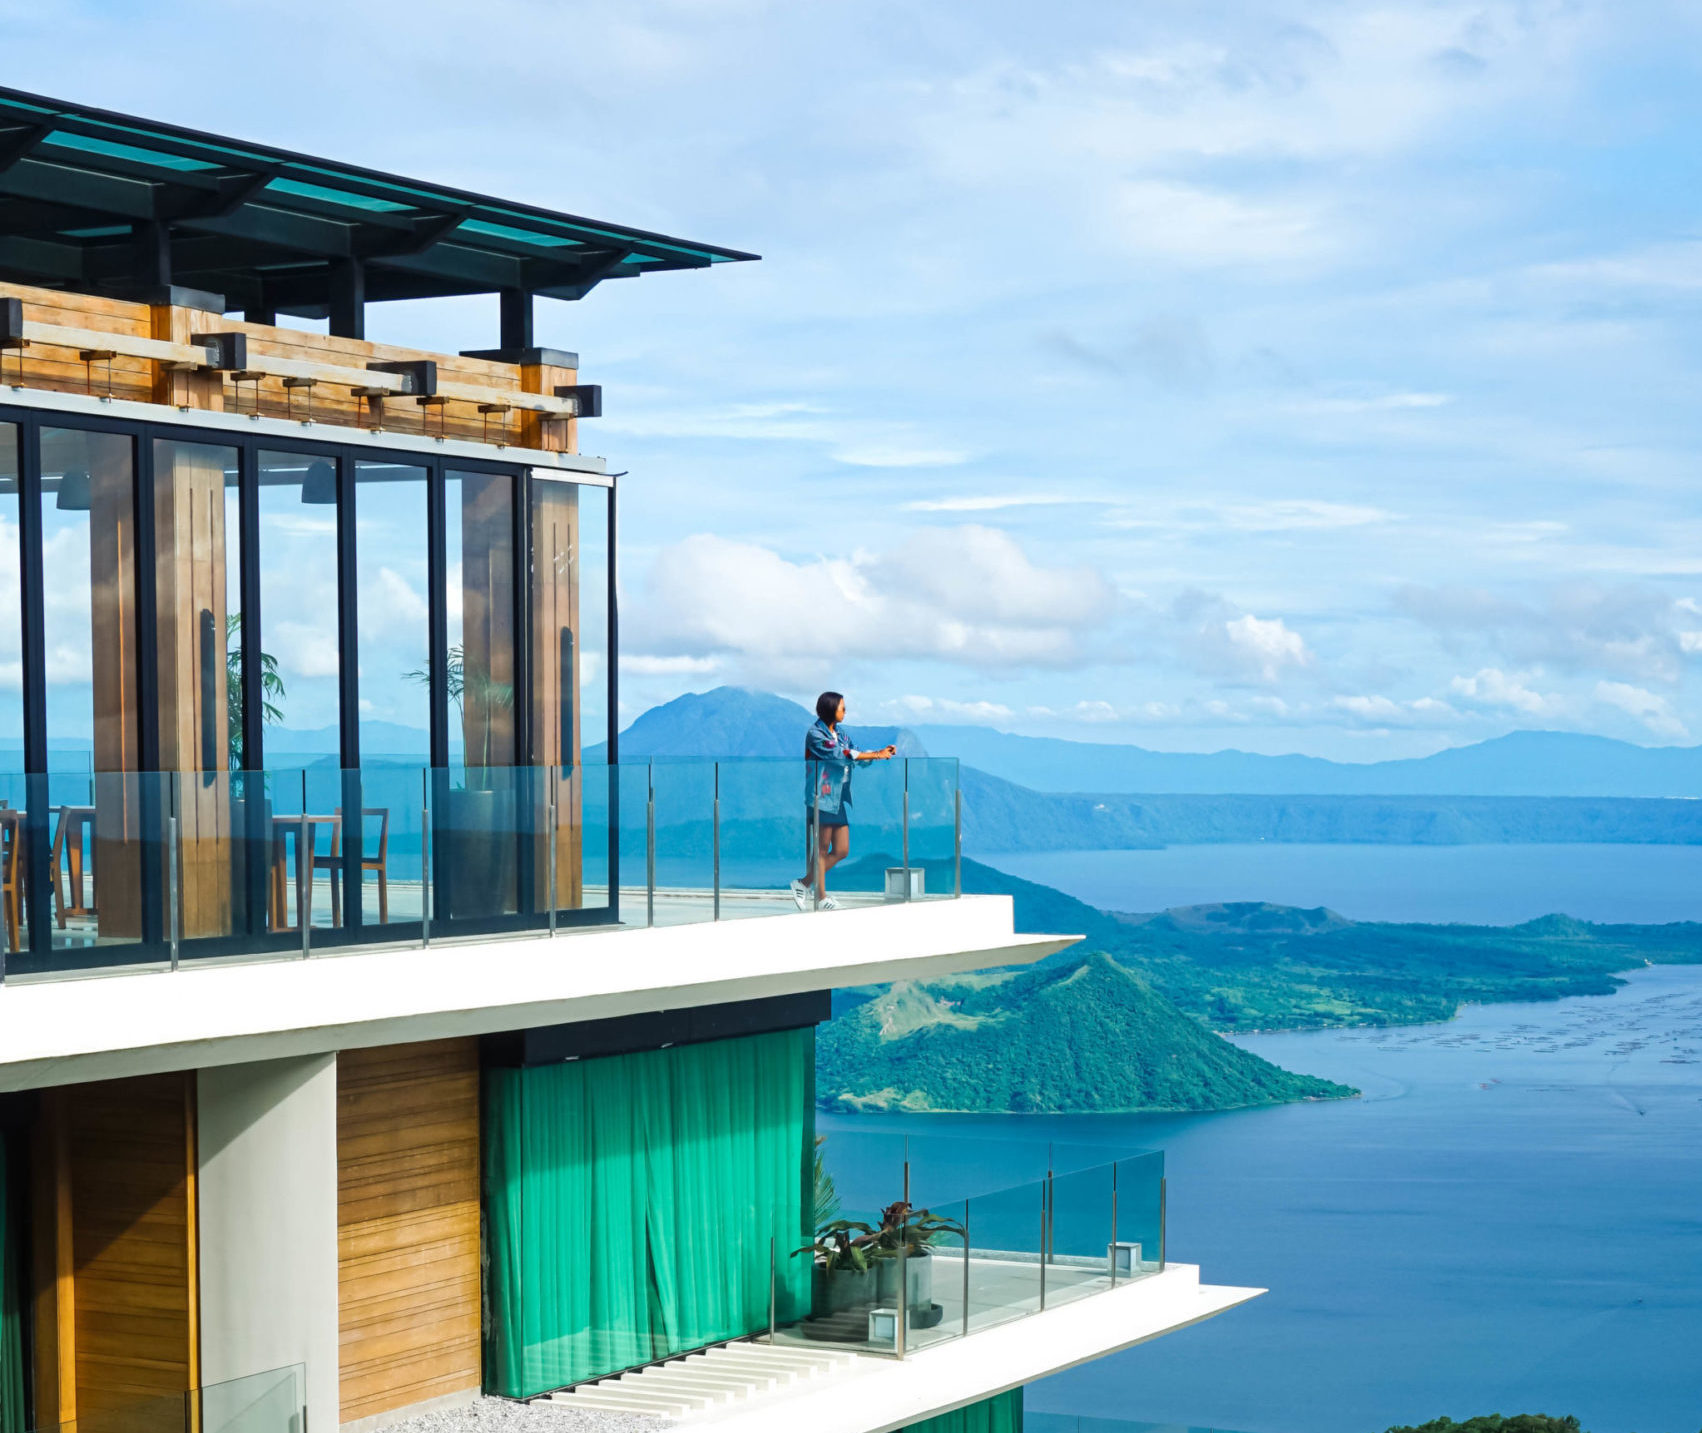 Escala hotel with a view of Taal volcano in Tagaytay, Philippines